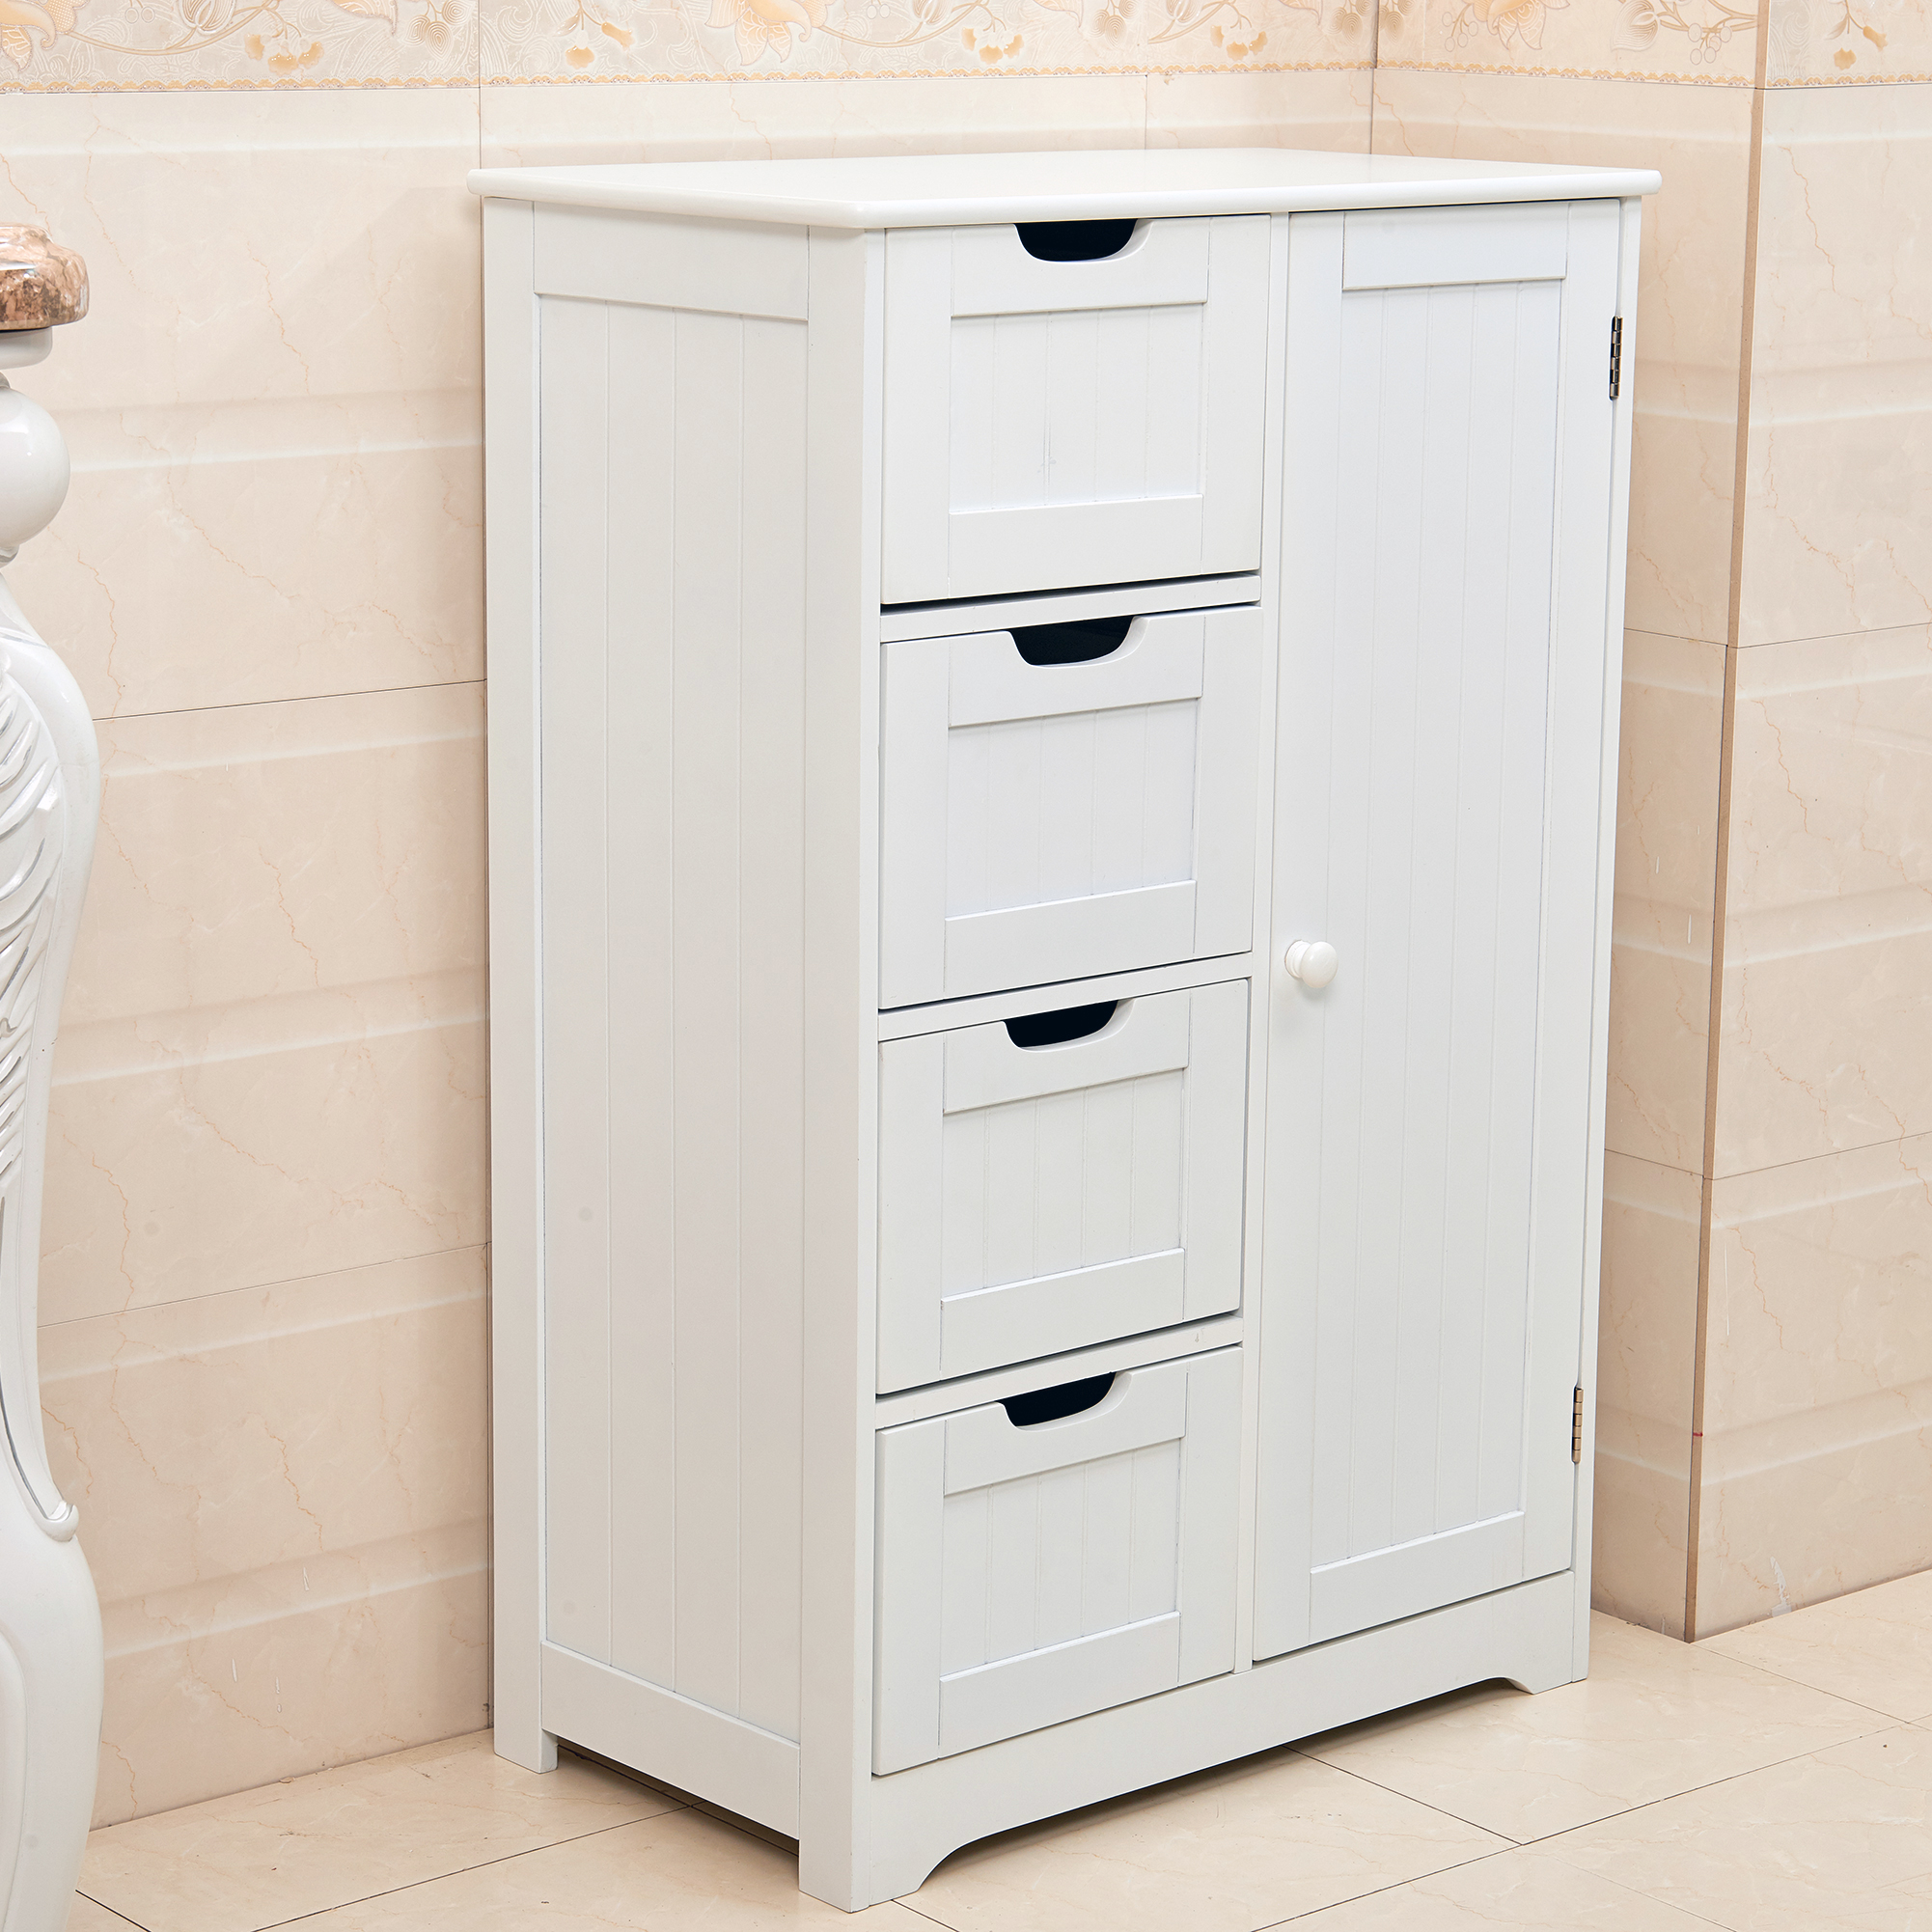 White wooden 4 drawer bathroom storage cupboard cabinet free standing unit bath ebay for White bathroom cabinets free standing